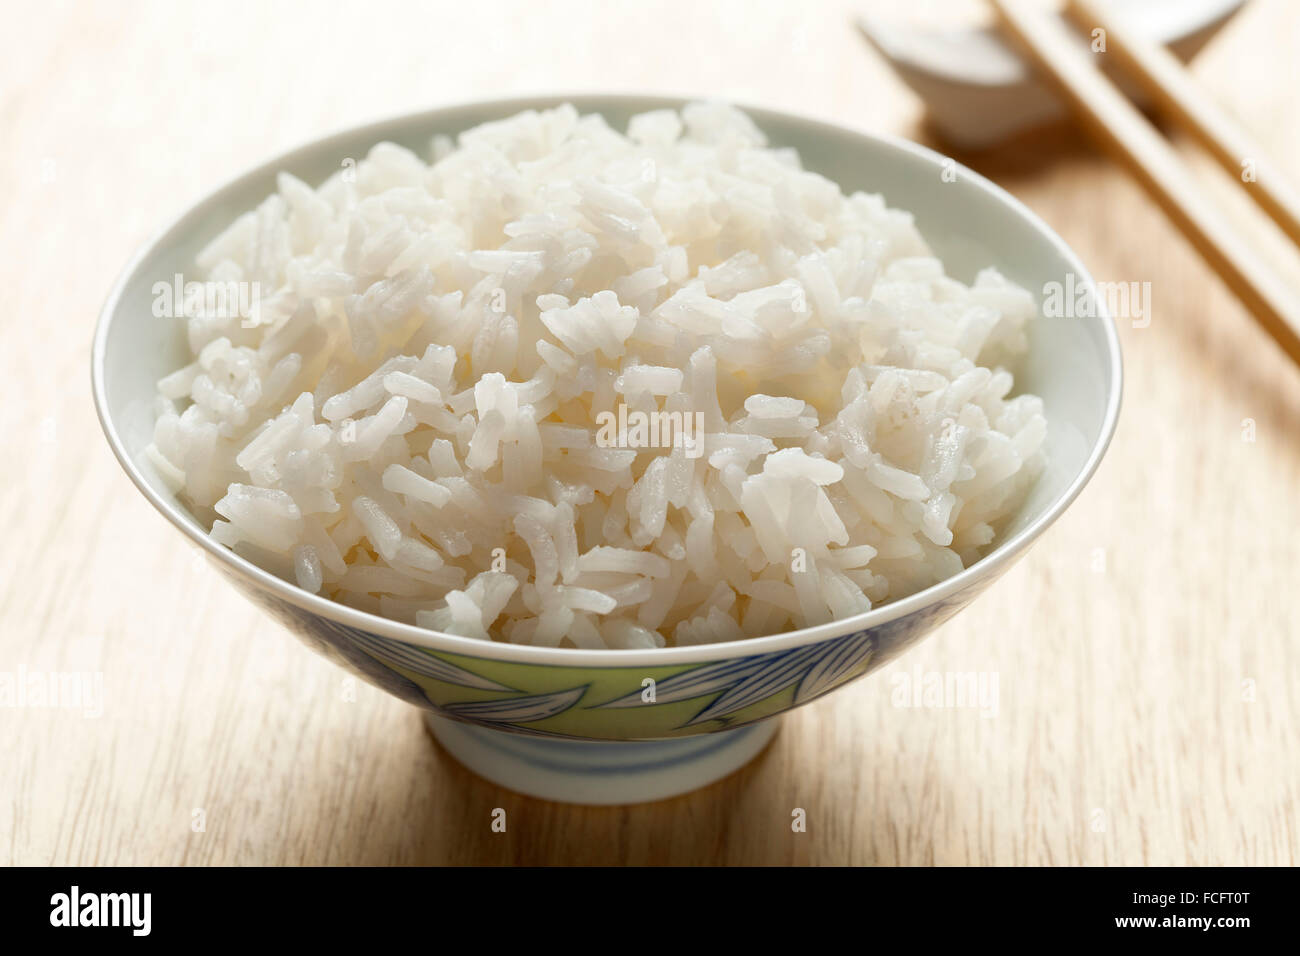 Bowl with cooked white Jasmine rice - Stock Image